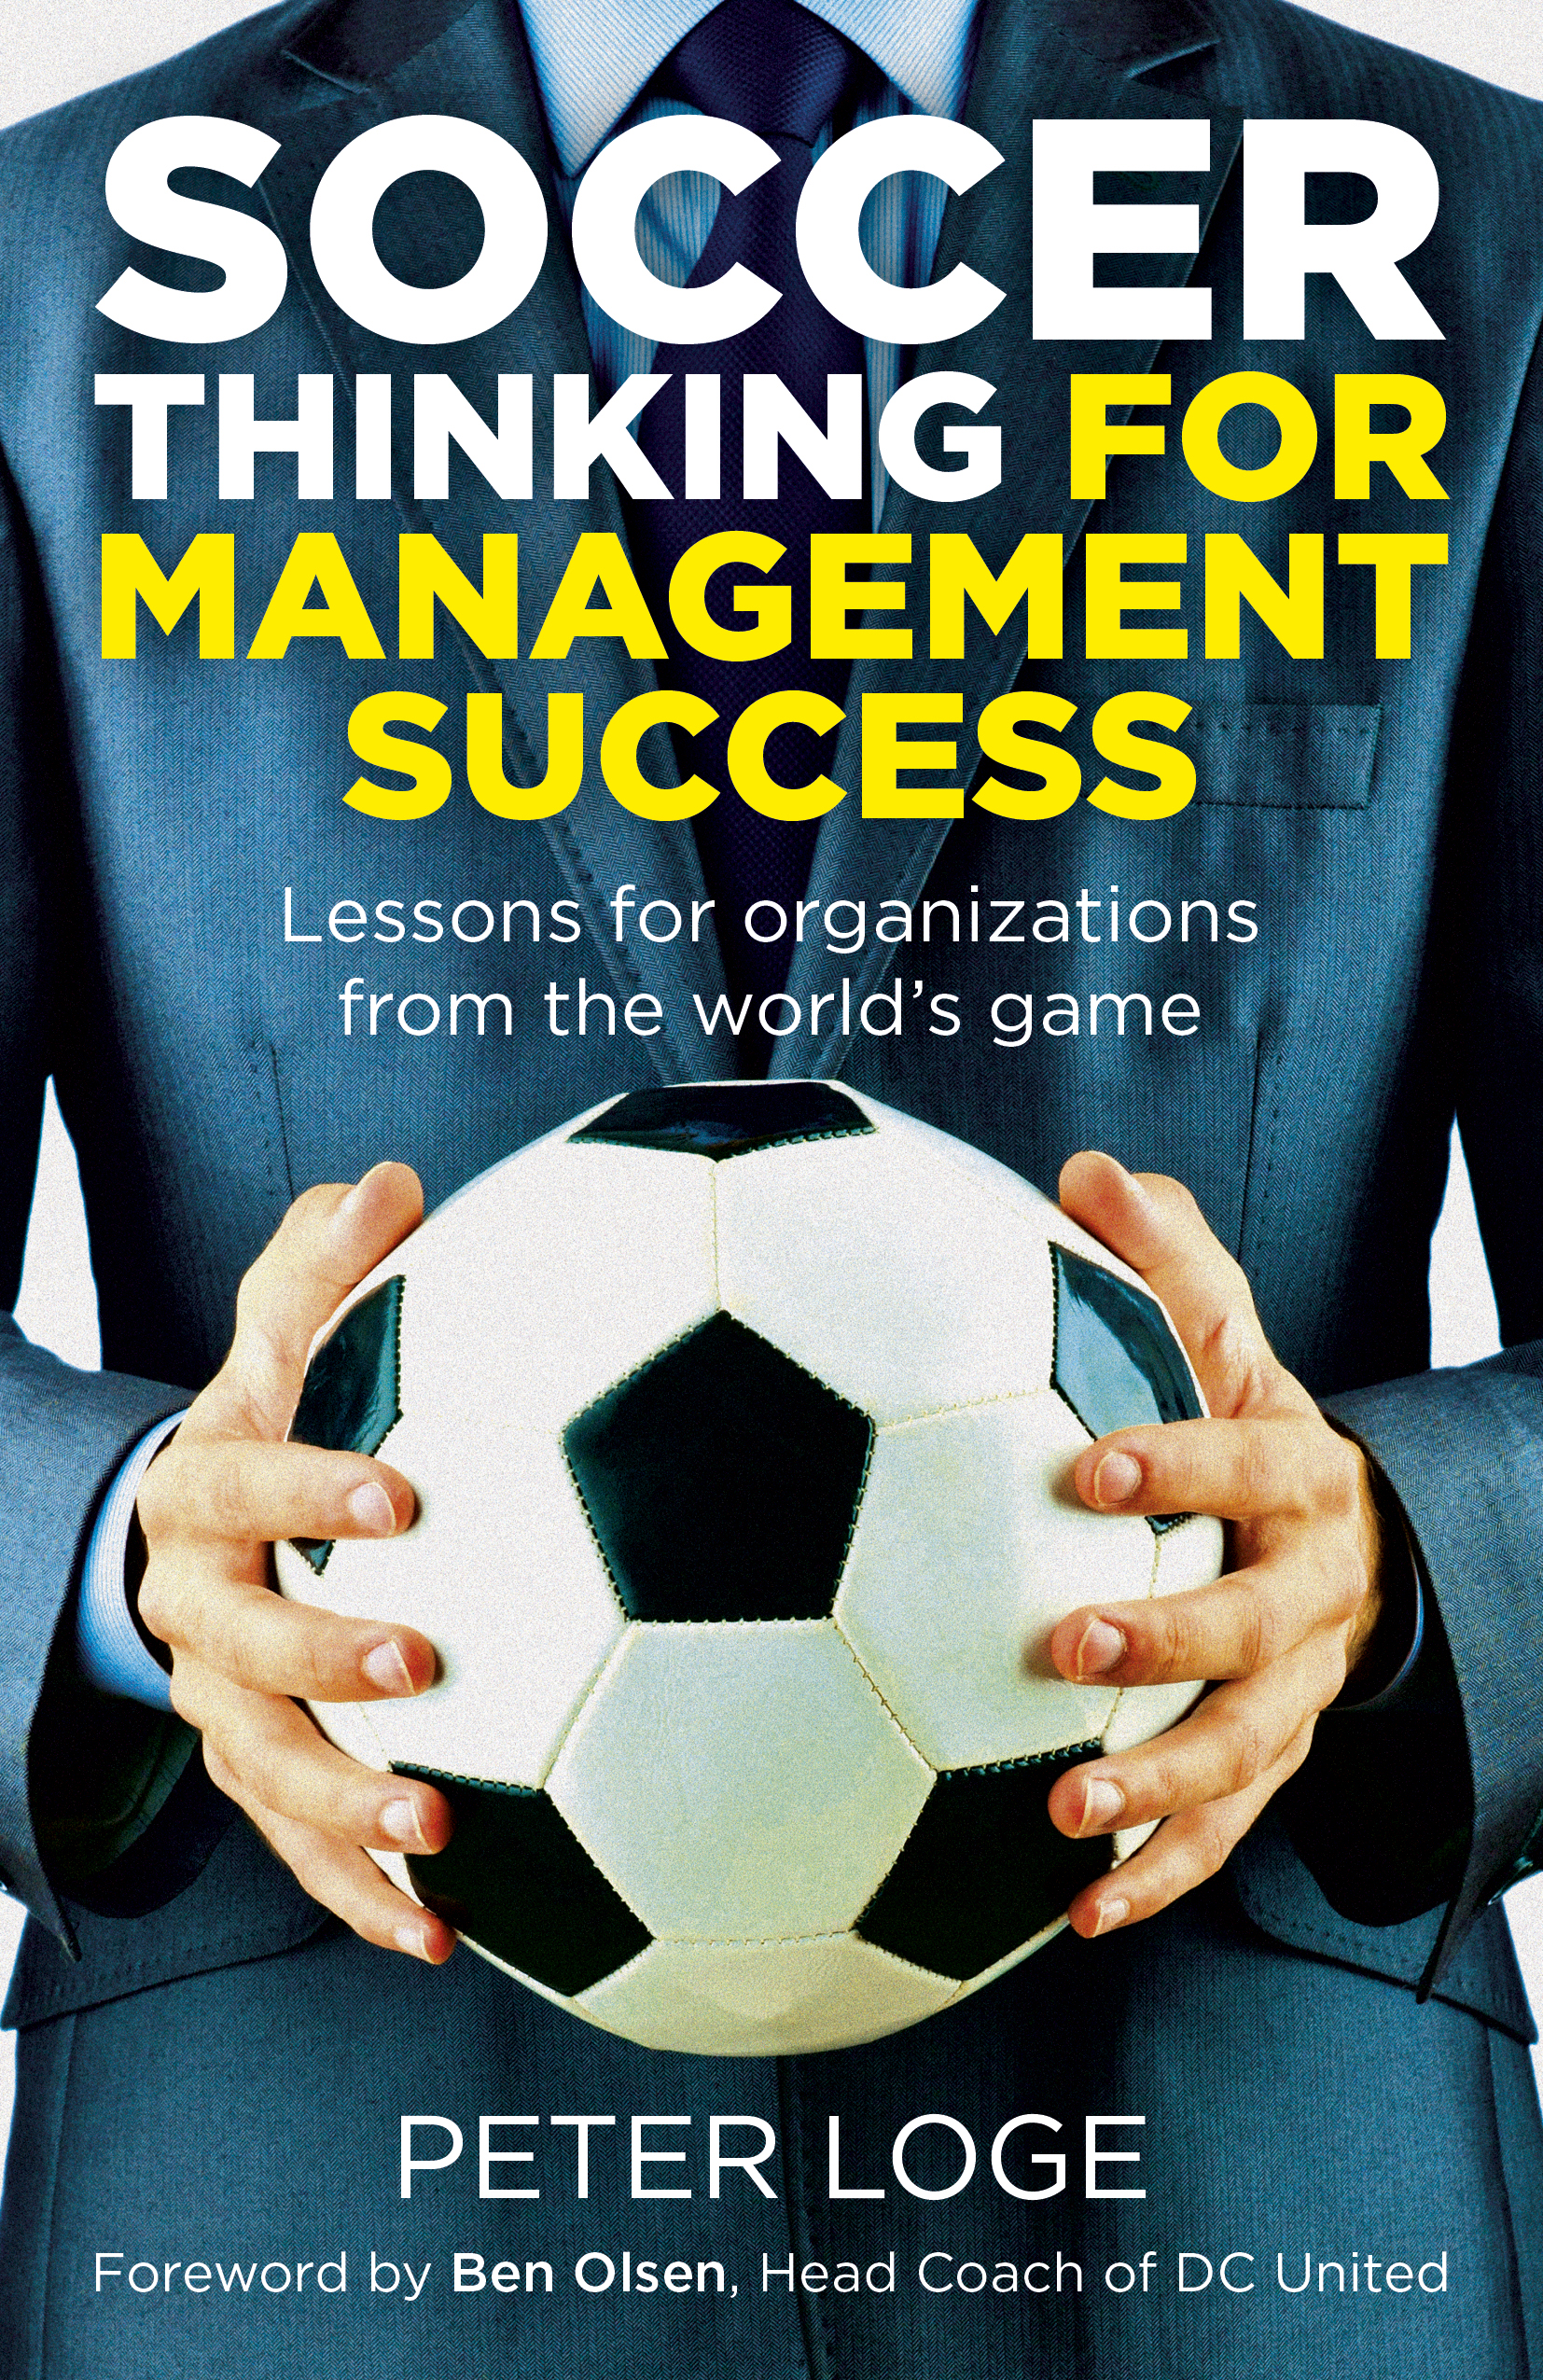 Pre-order Soccer Thinking for Management Success from Amazon here - The modern world is networked and always working. Organizations no longer have the luxury of time. Expertise is no longer confined to a couple of smart guys in corner offices, reviewing information to which only they have access and issuing instructions through layers of middle-men to nine-to-fivers who carry out the dictates and feed paper back up the chain, awaiting the next set of instructions. Today's successful organization is decentralized and never stops moving. In fact, organizational success is a lot like soccer. Every player is both a specialist and generalist. Responsibility on the field is distributed, and everyone on the team works for everyone else. Communication among players is constant. Soccer is 90 minutes of systems thinking in action. Soccer Thinking for Management Success is by a soccer fan and player who has spent a career building and running teams and organizations. He draws on insights from leaders, known and not-so-well-known who use soccer thinking to succeed. This is not just another book on how to be a great leader by a famous person. This is a management and leadership book by, and for, the rest of us.